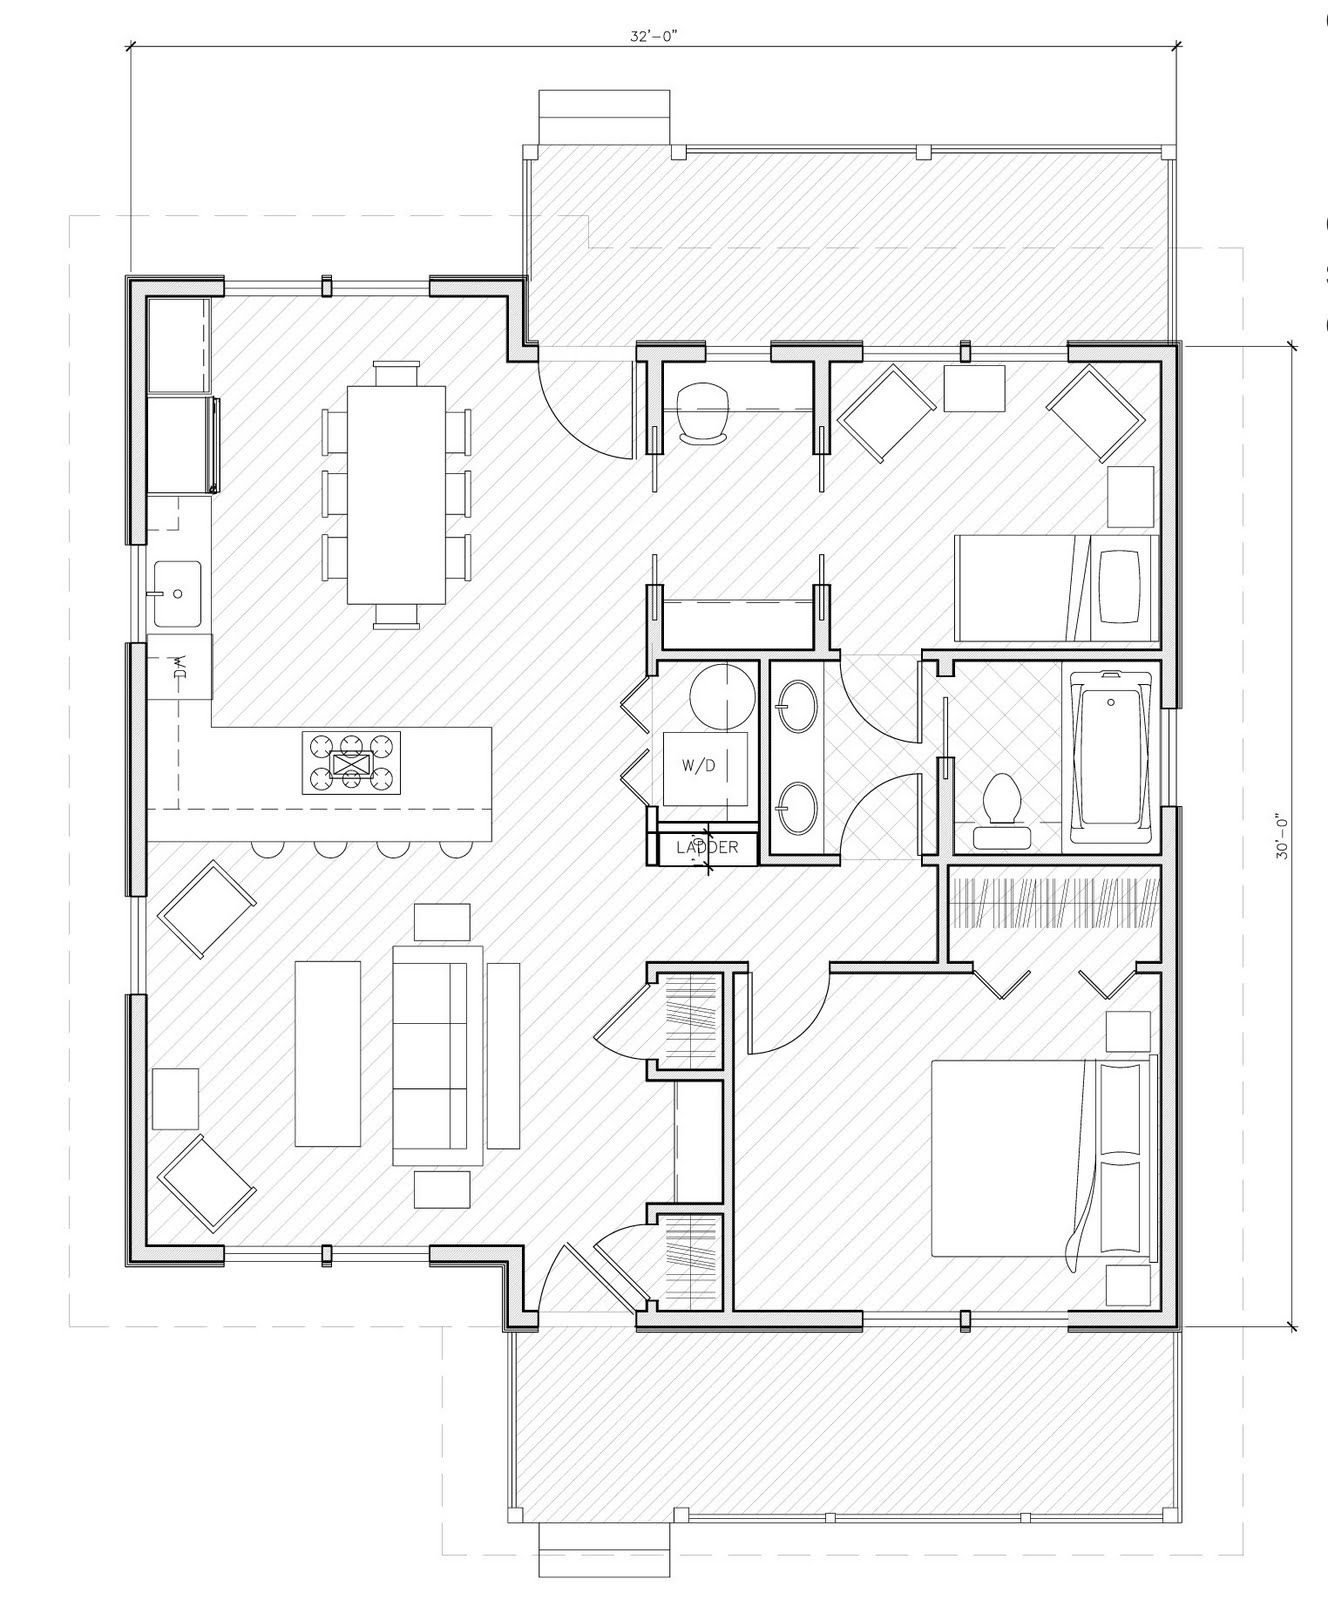 Small House Plans Under 1000 sq ft | Homes | Pinterest | Small ...